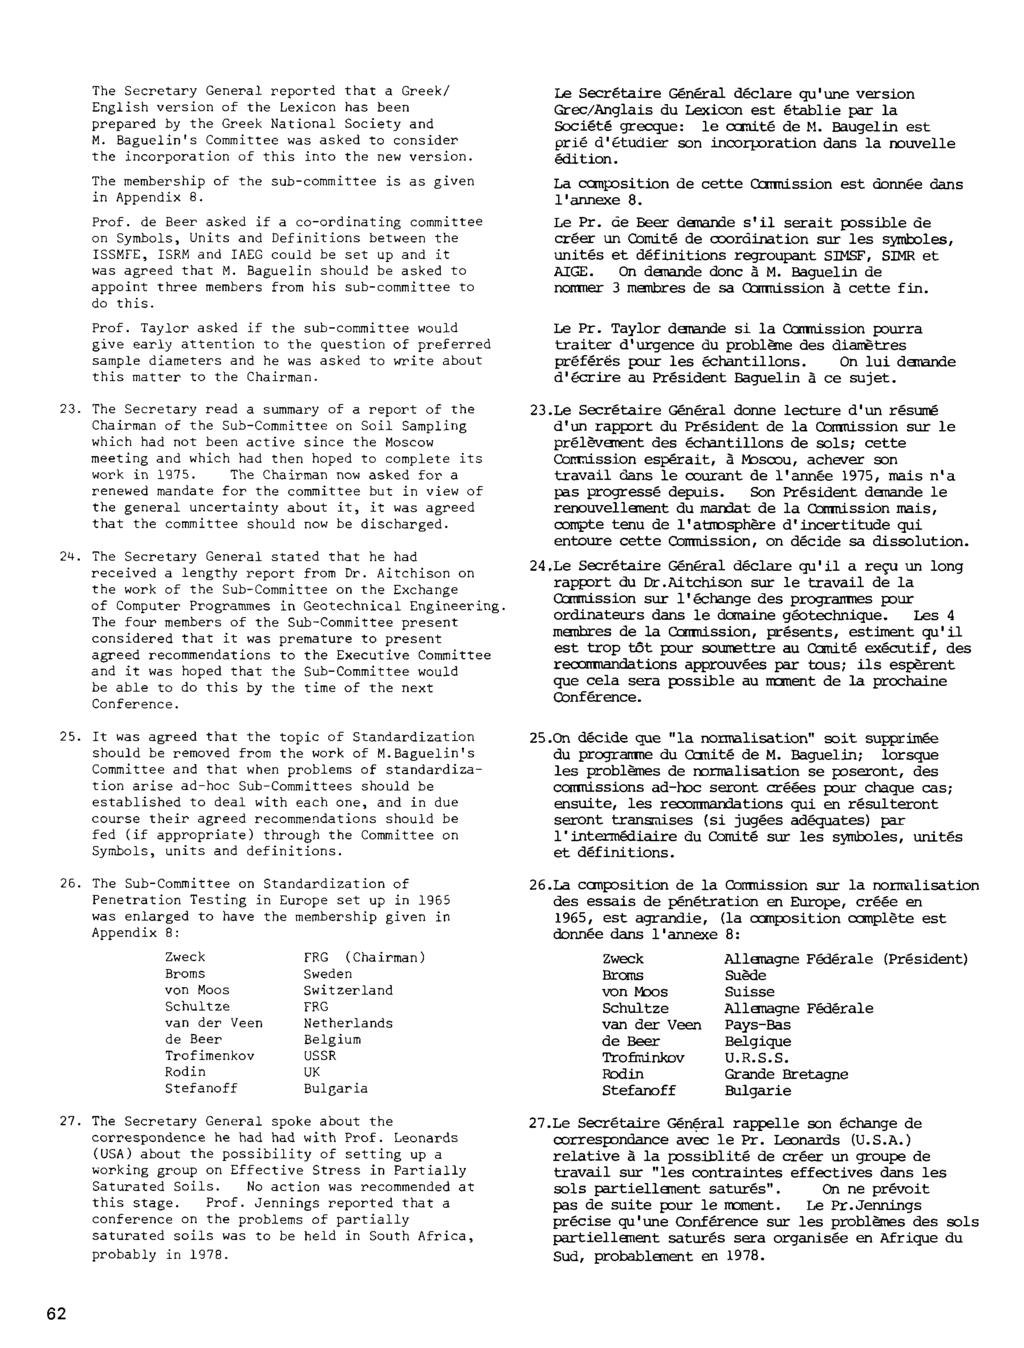 The japanese society of soil mechanics and foundation engineering pdf the secretary general reported that a greek english version of the lexicon has been prepared spiritdancerdesigns Images